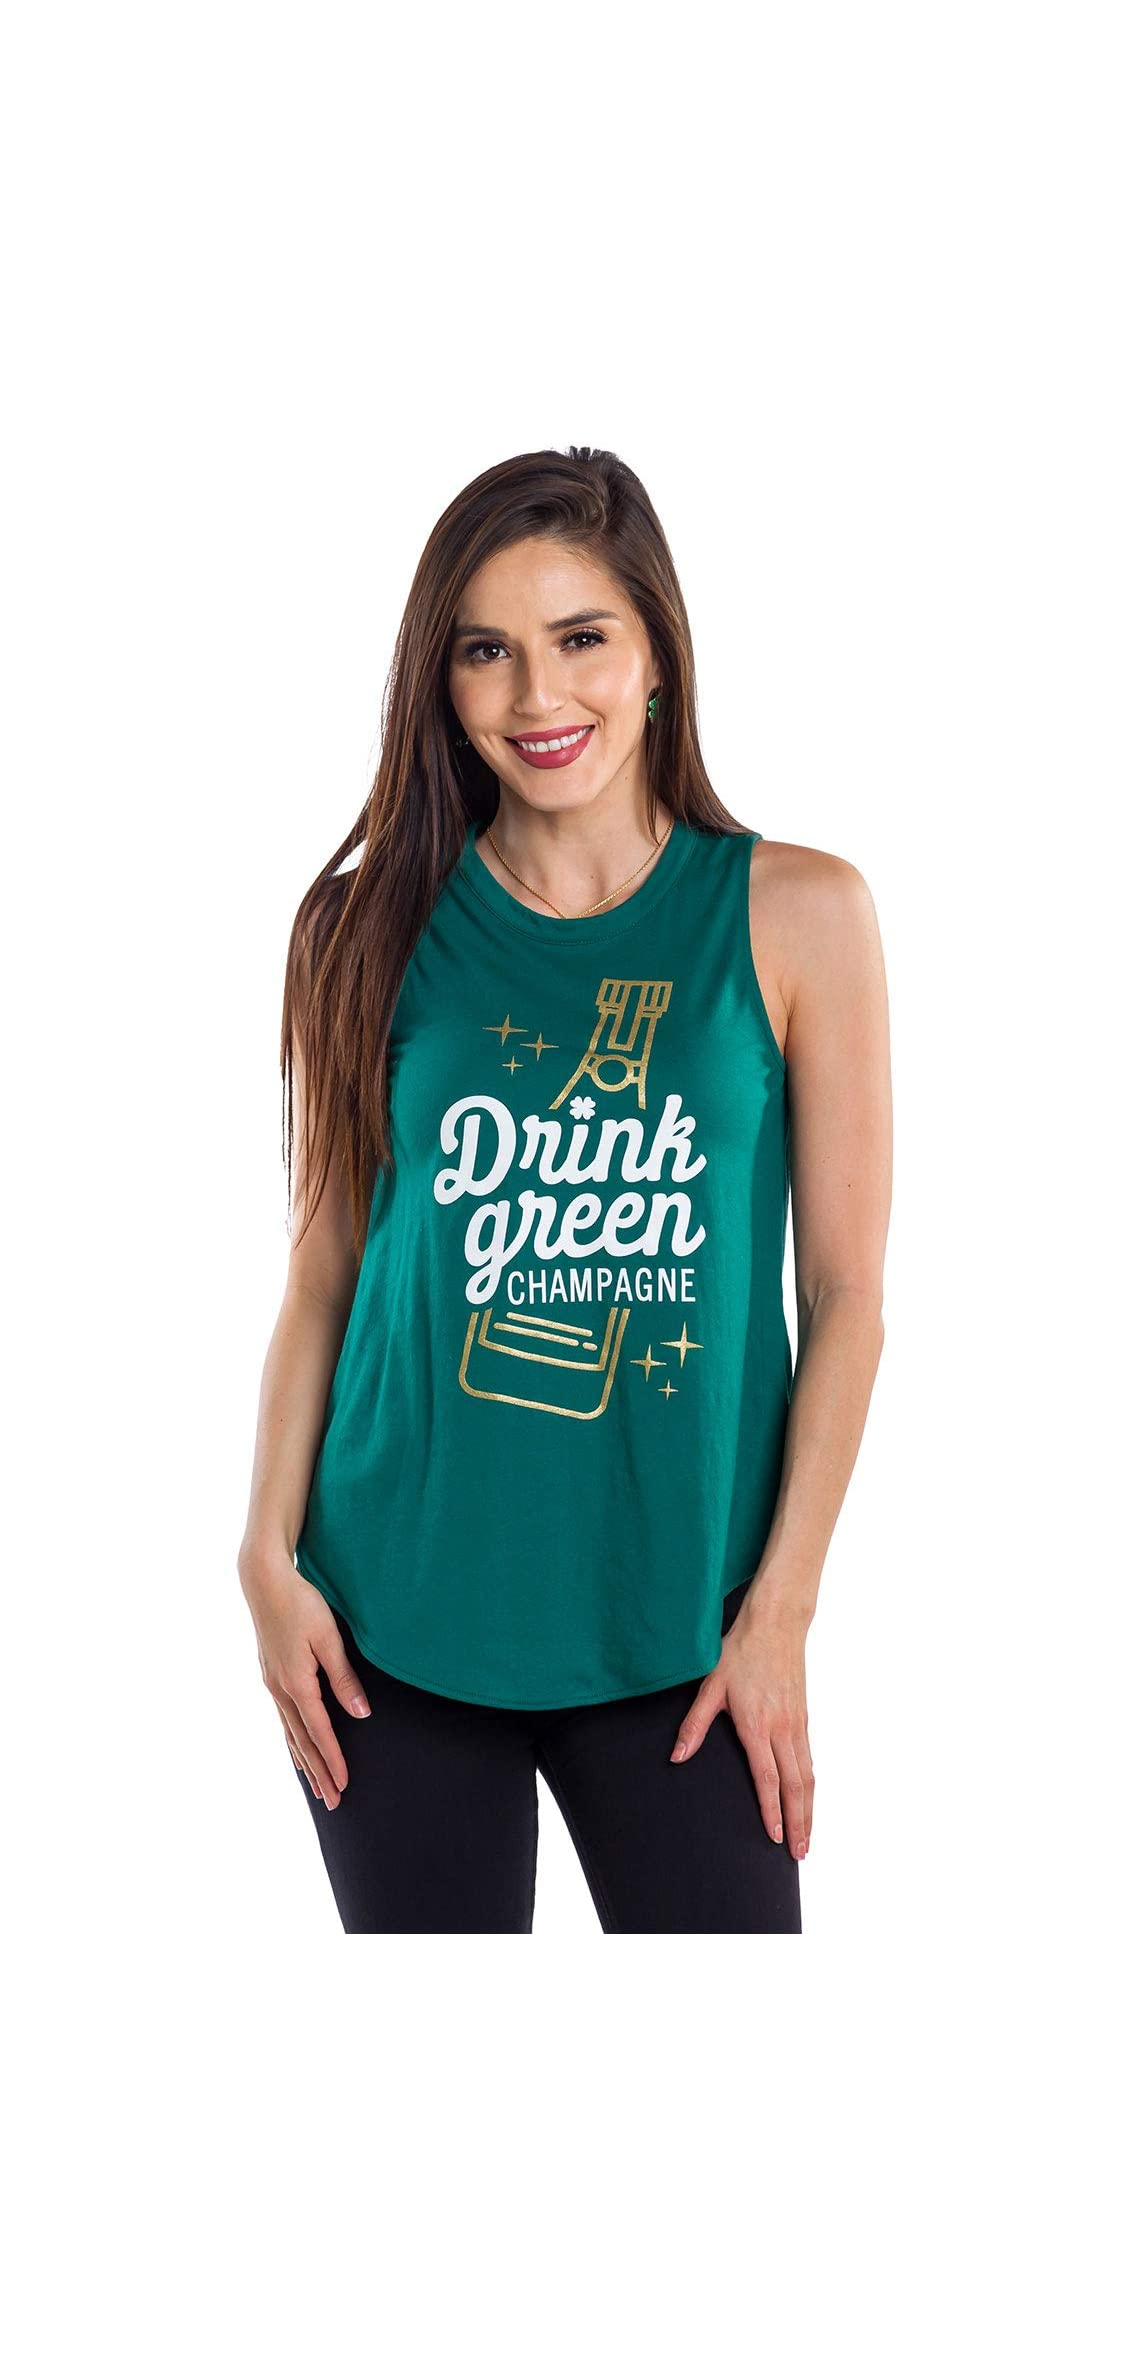 Women's St Patrick's Day T-shirts - Female St Paddy's Day